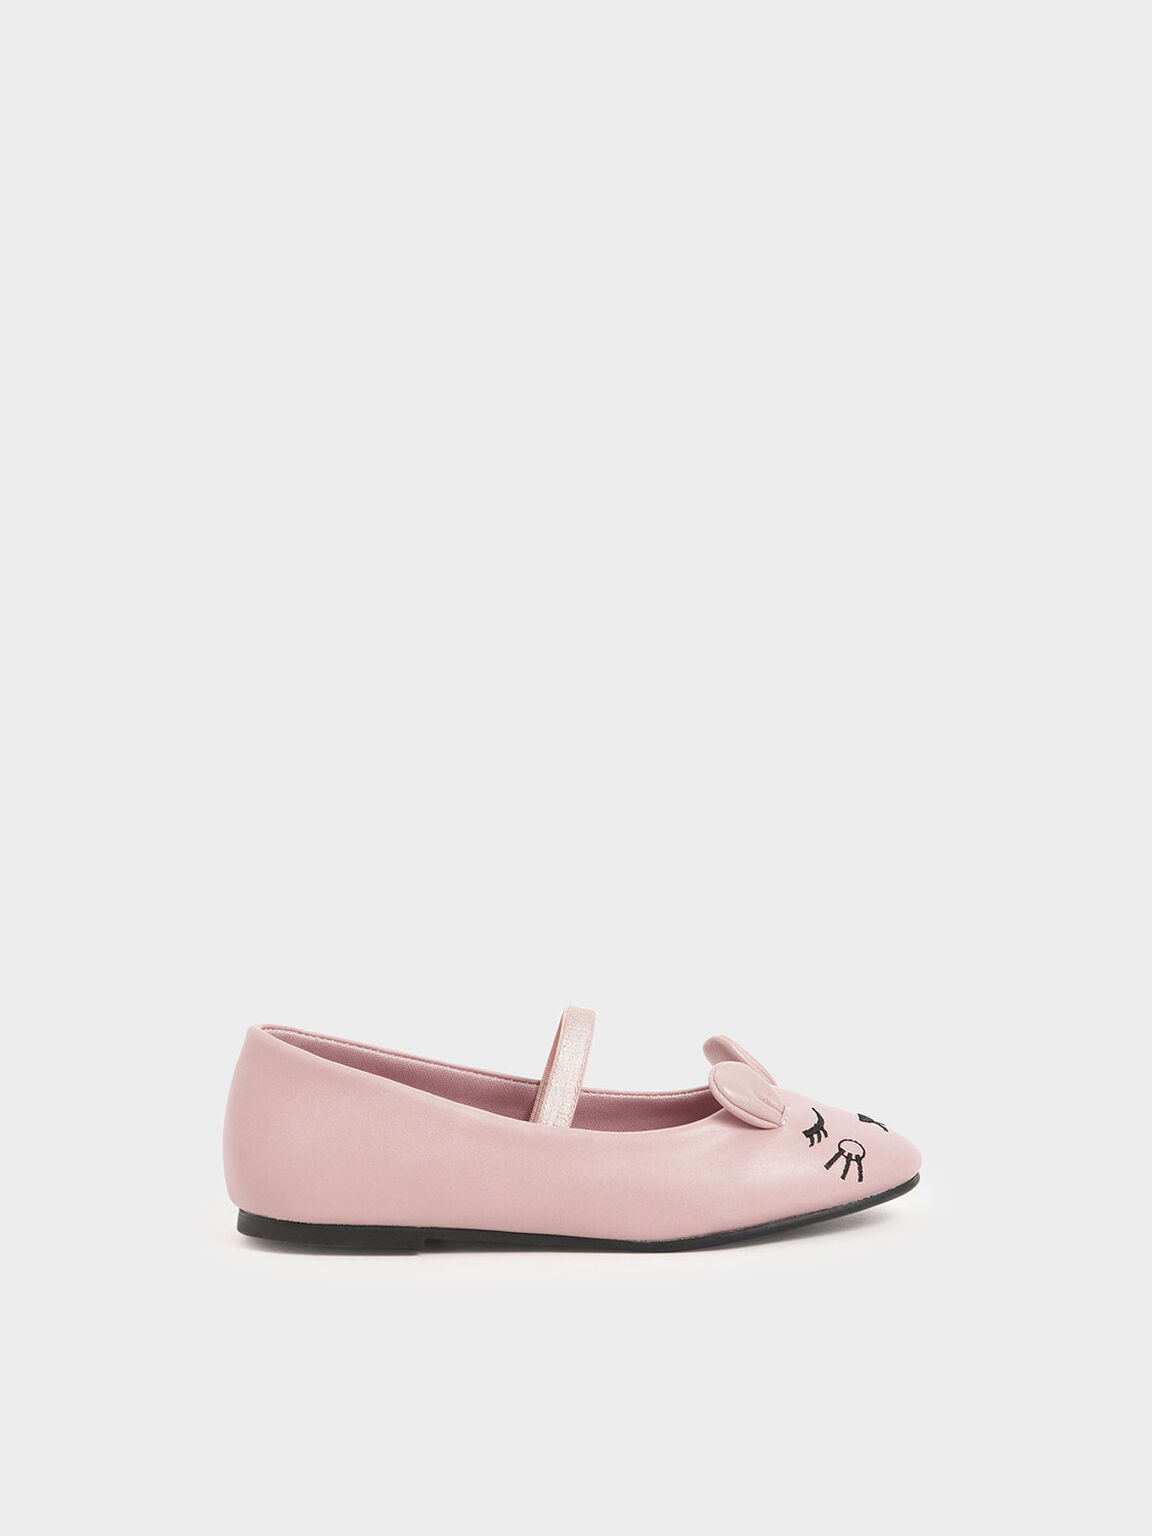 Girls' 'Rat Zodiac' Mary Jane Flats, Pink, hi-res